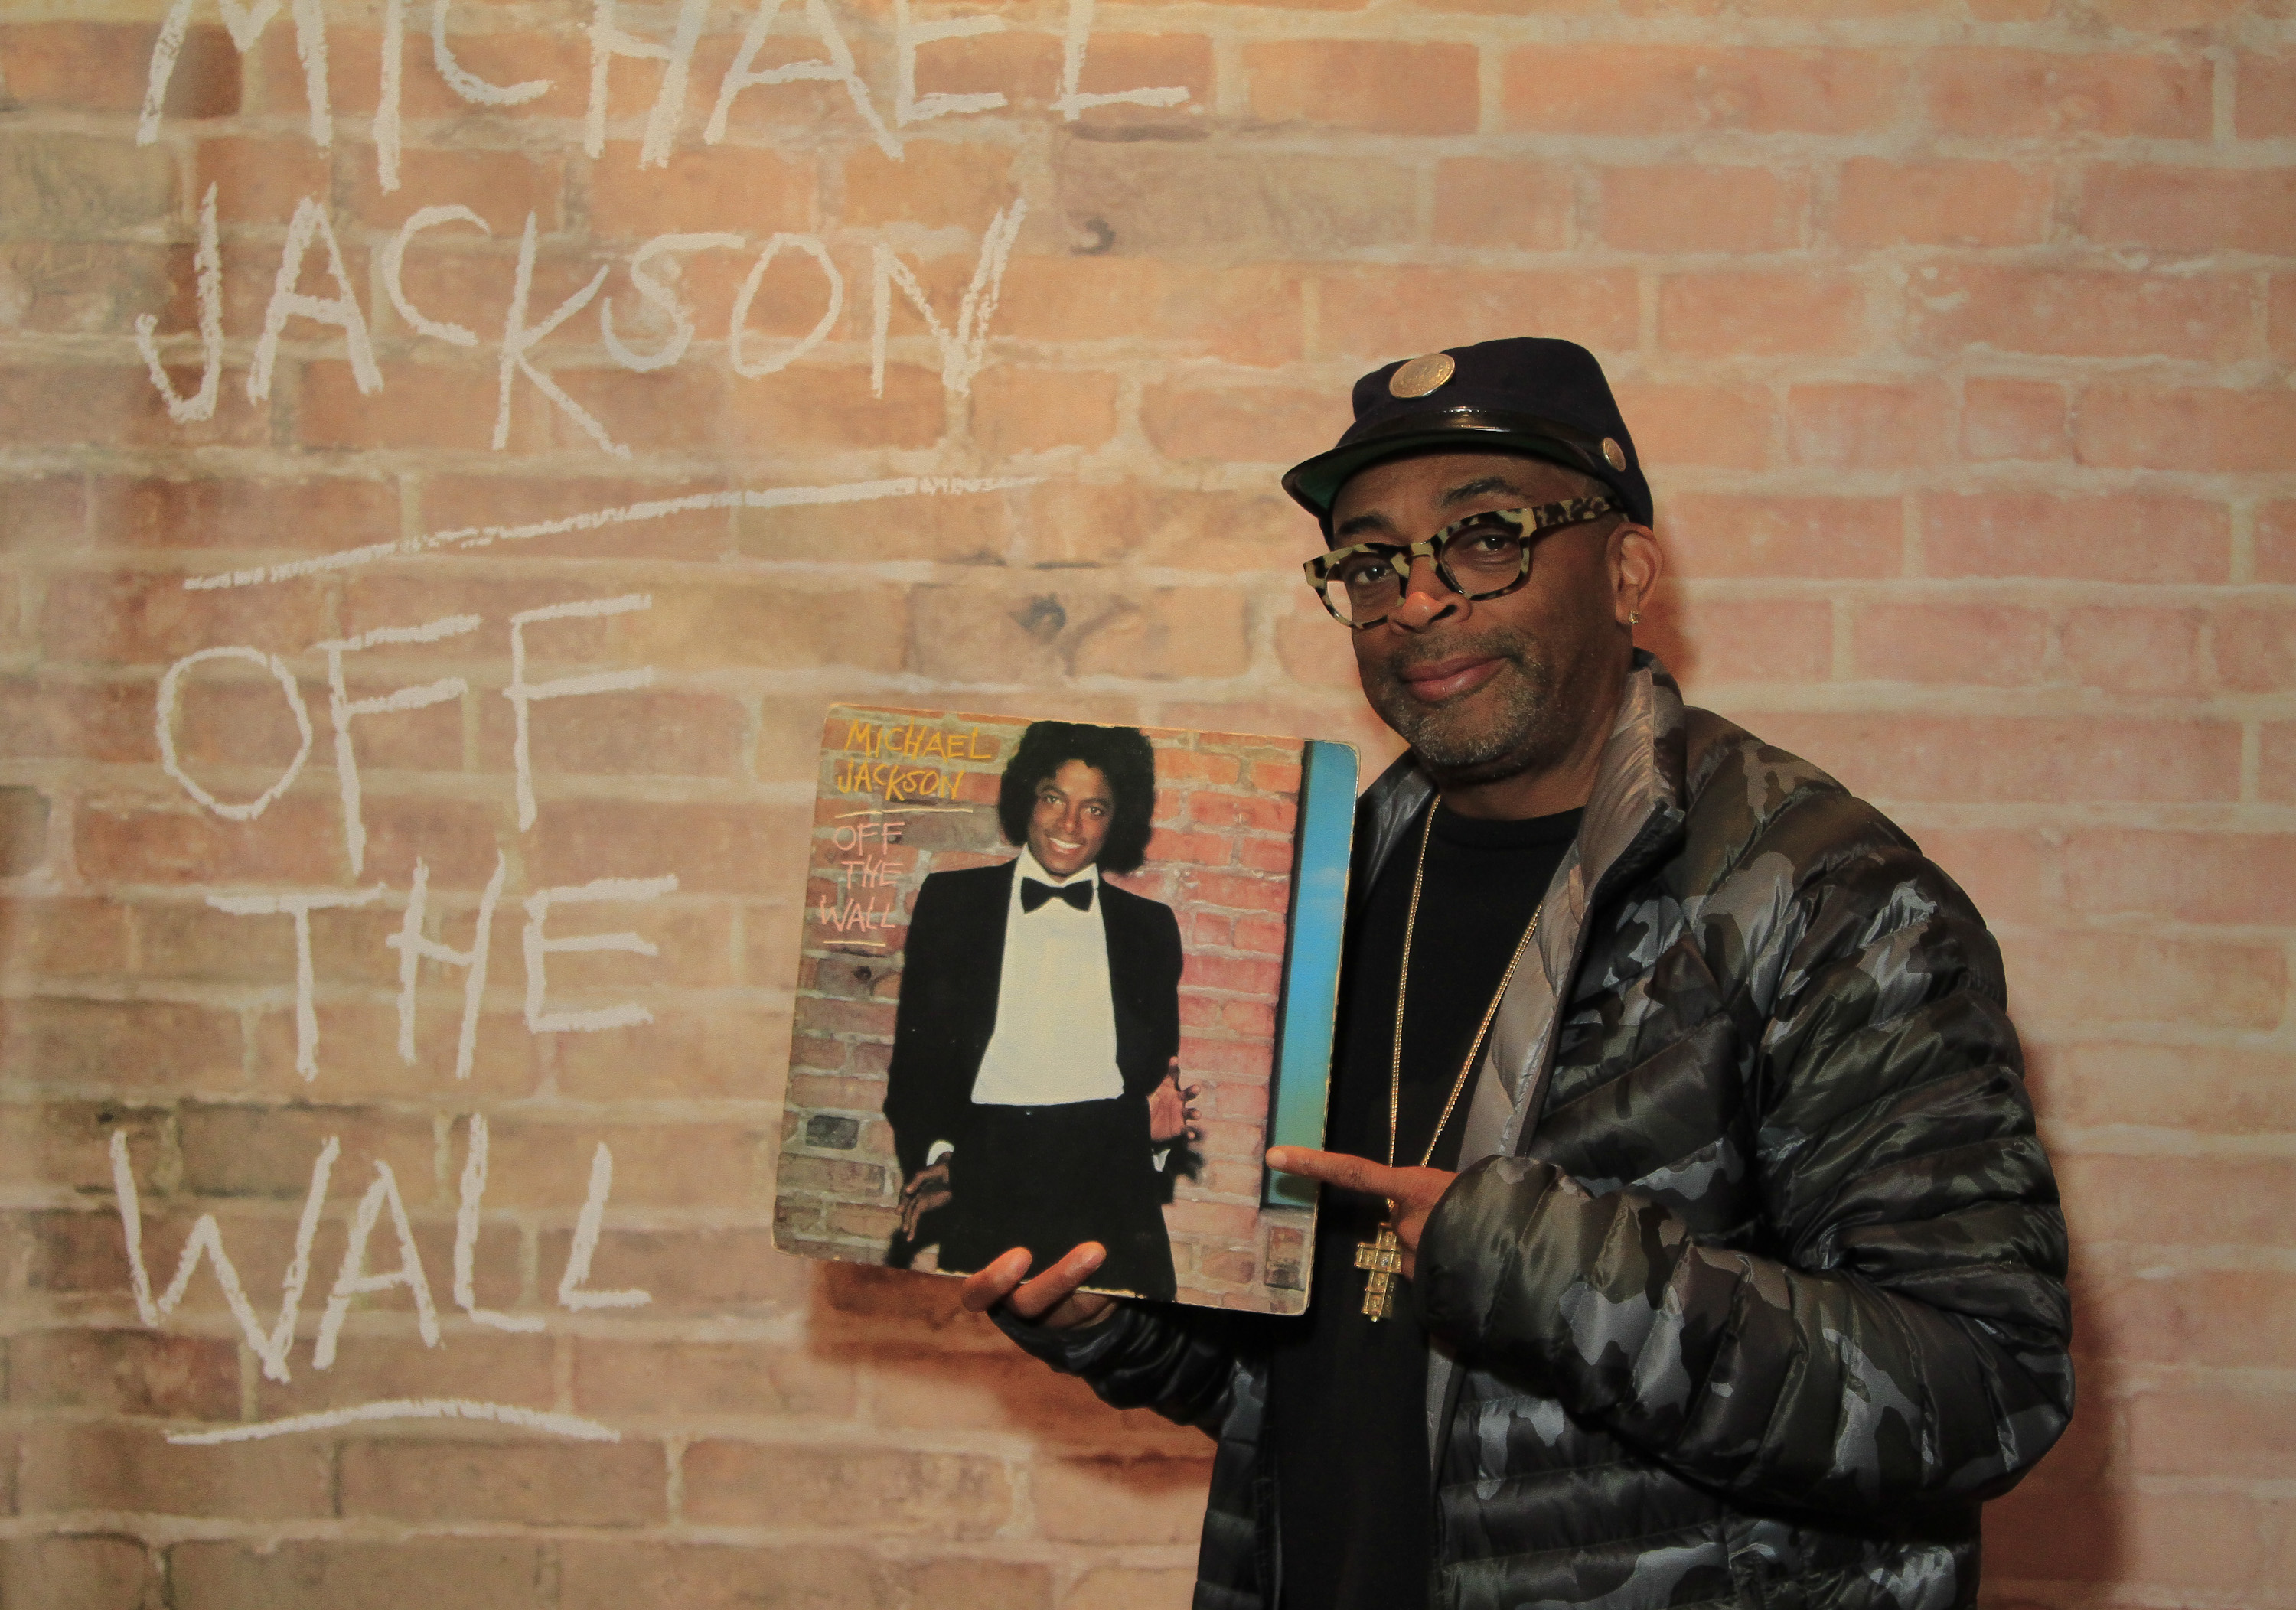 Spike Lee attends a screening of his new film 'Michael Jackson's Journey From Motown To Off The Wall' on February 1, 2016 at